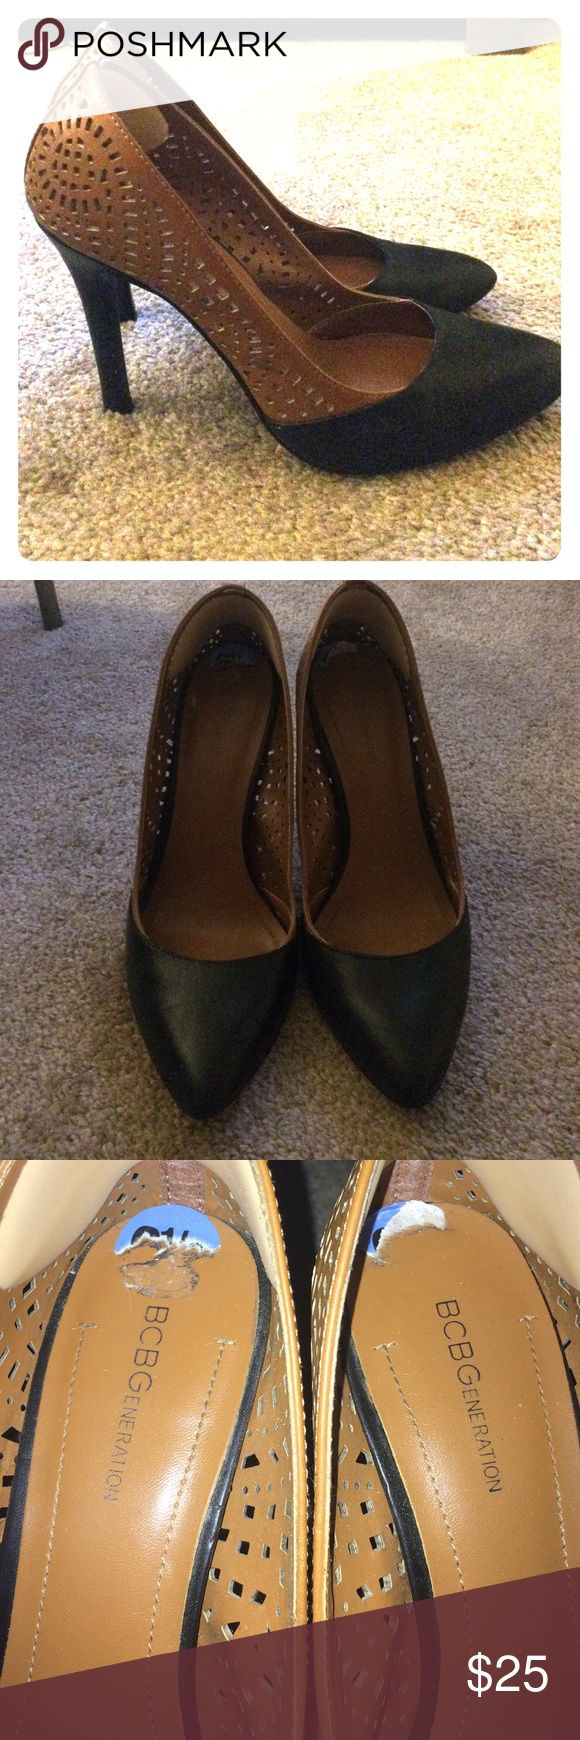 BCBG Generation two tone pointed heels - sz 6.5 Hello all! This is a BCBG Generation heels that are two toned. Black and brown with laser cut design. Pre owned but in good condition BCBGeneration Shoes Heels